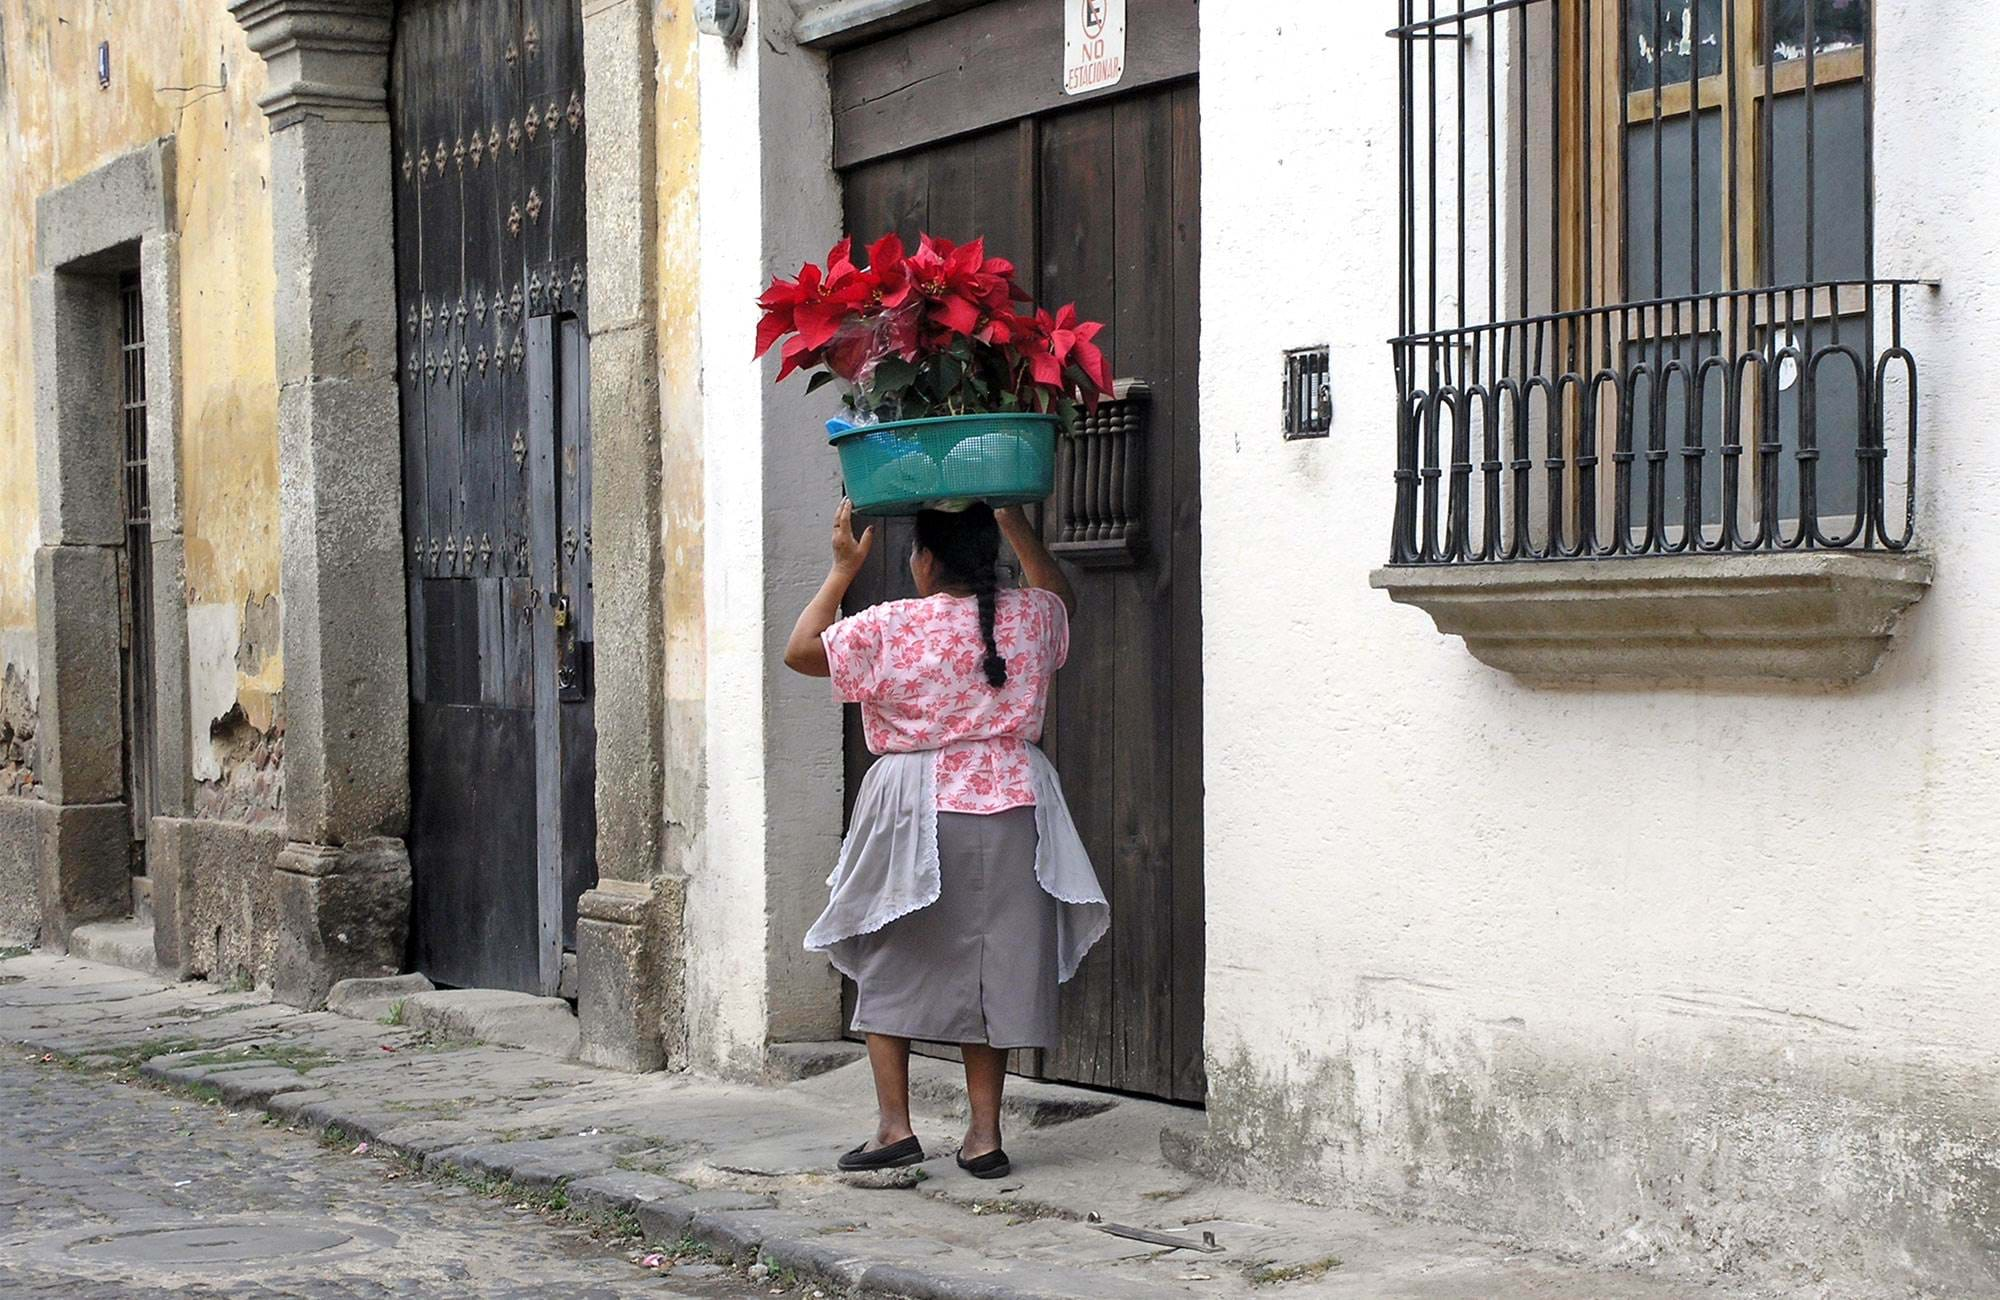 Lady carrying red flowers on her head in Antigua, Guatemala